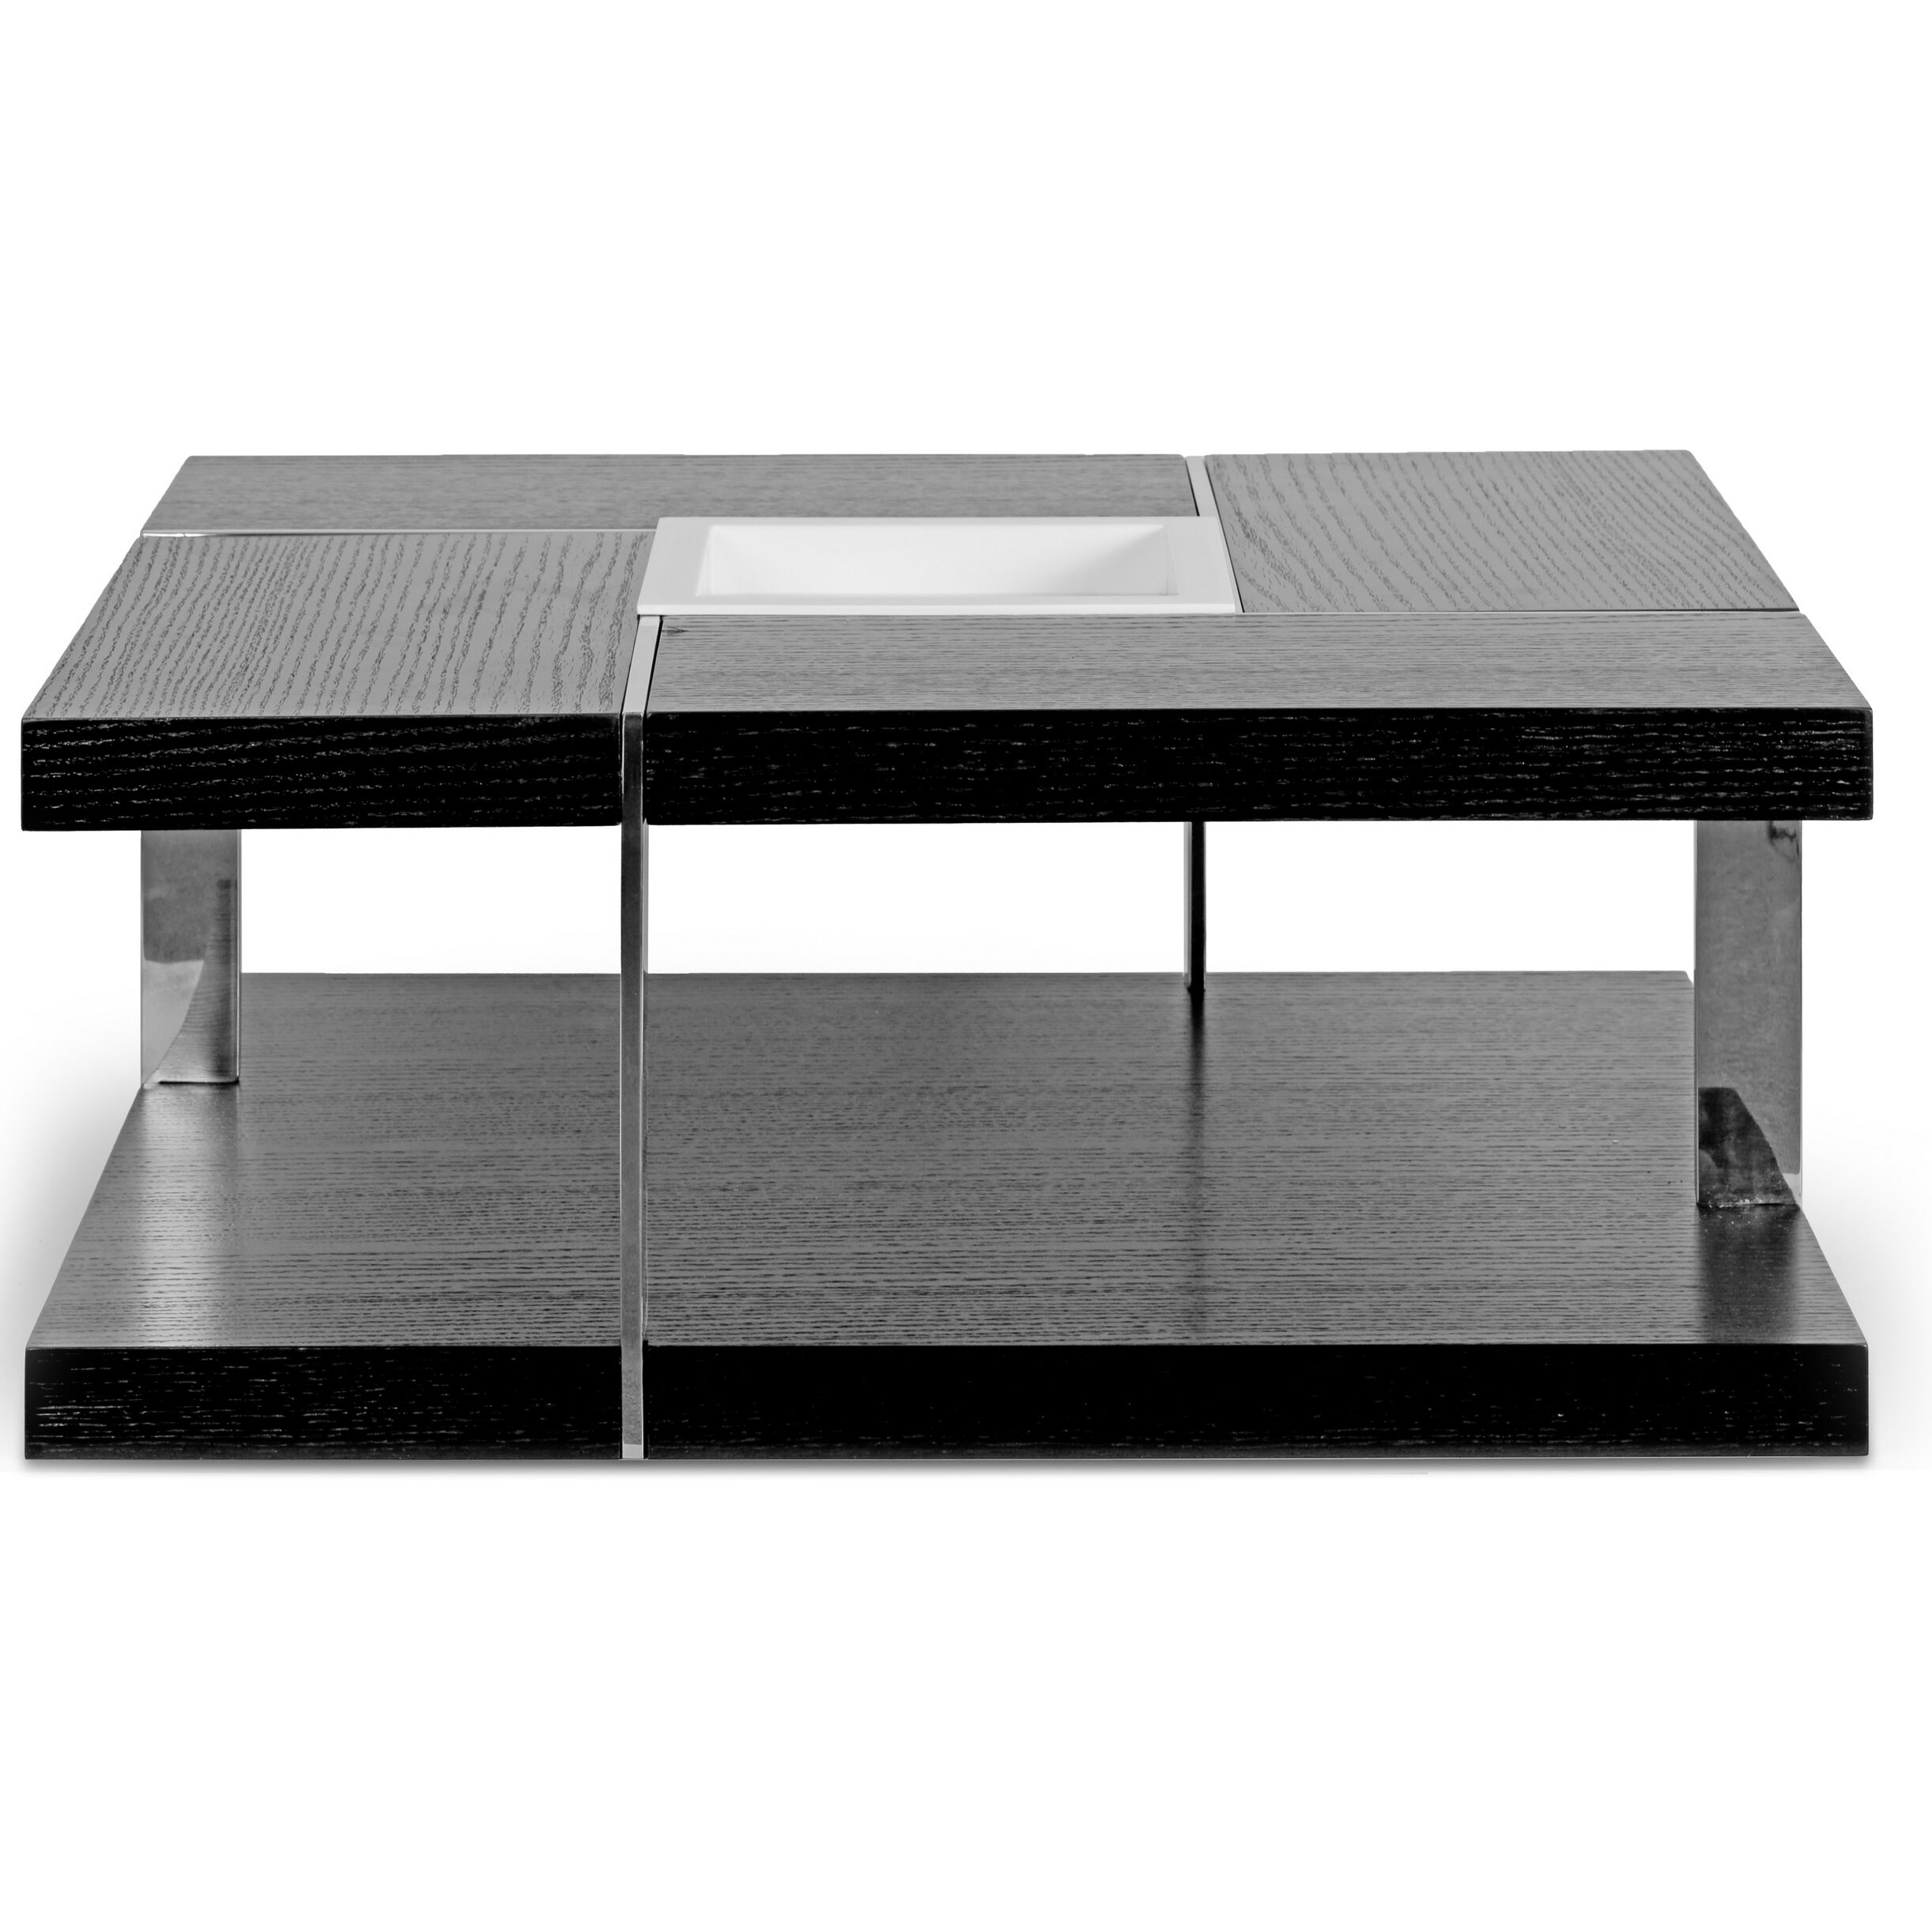 Coffee Table With Tray Top: Glamour Home Decor Aira Square Coffee Table With Tray Top